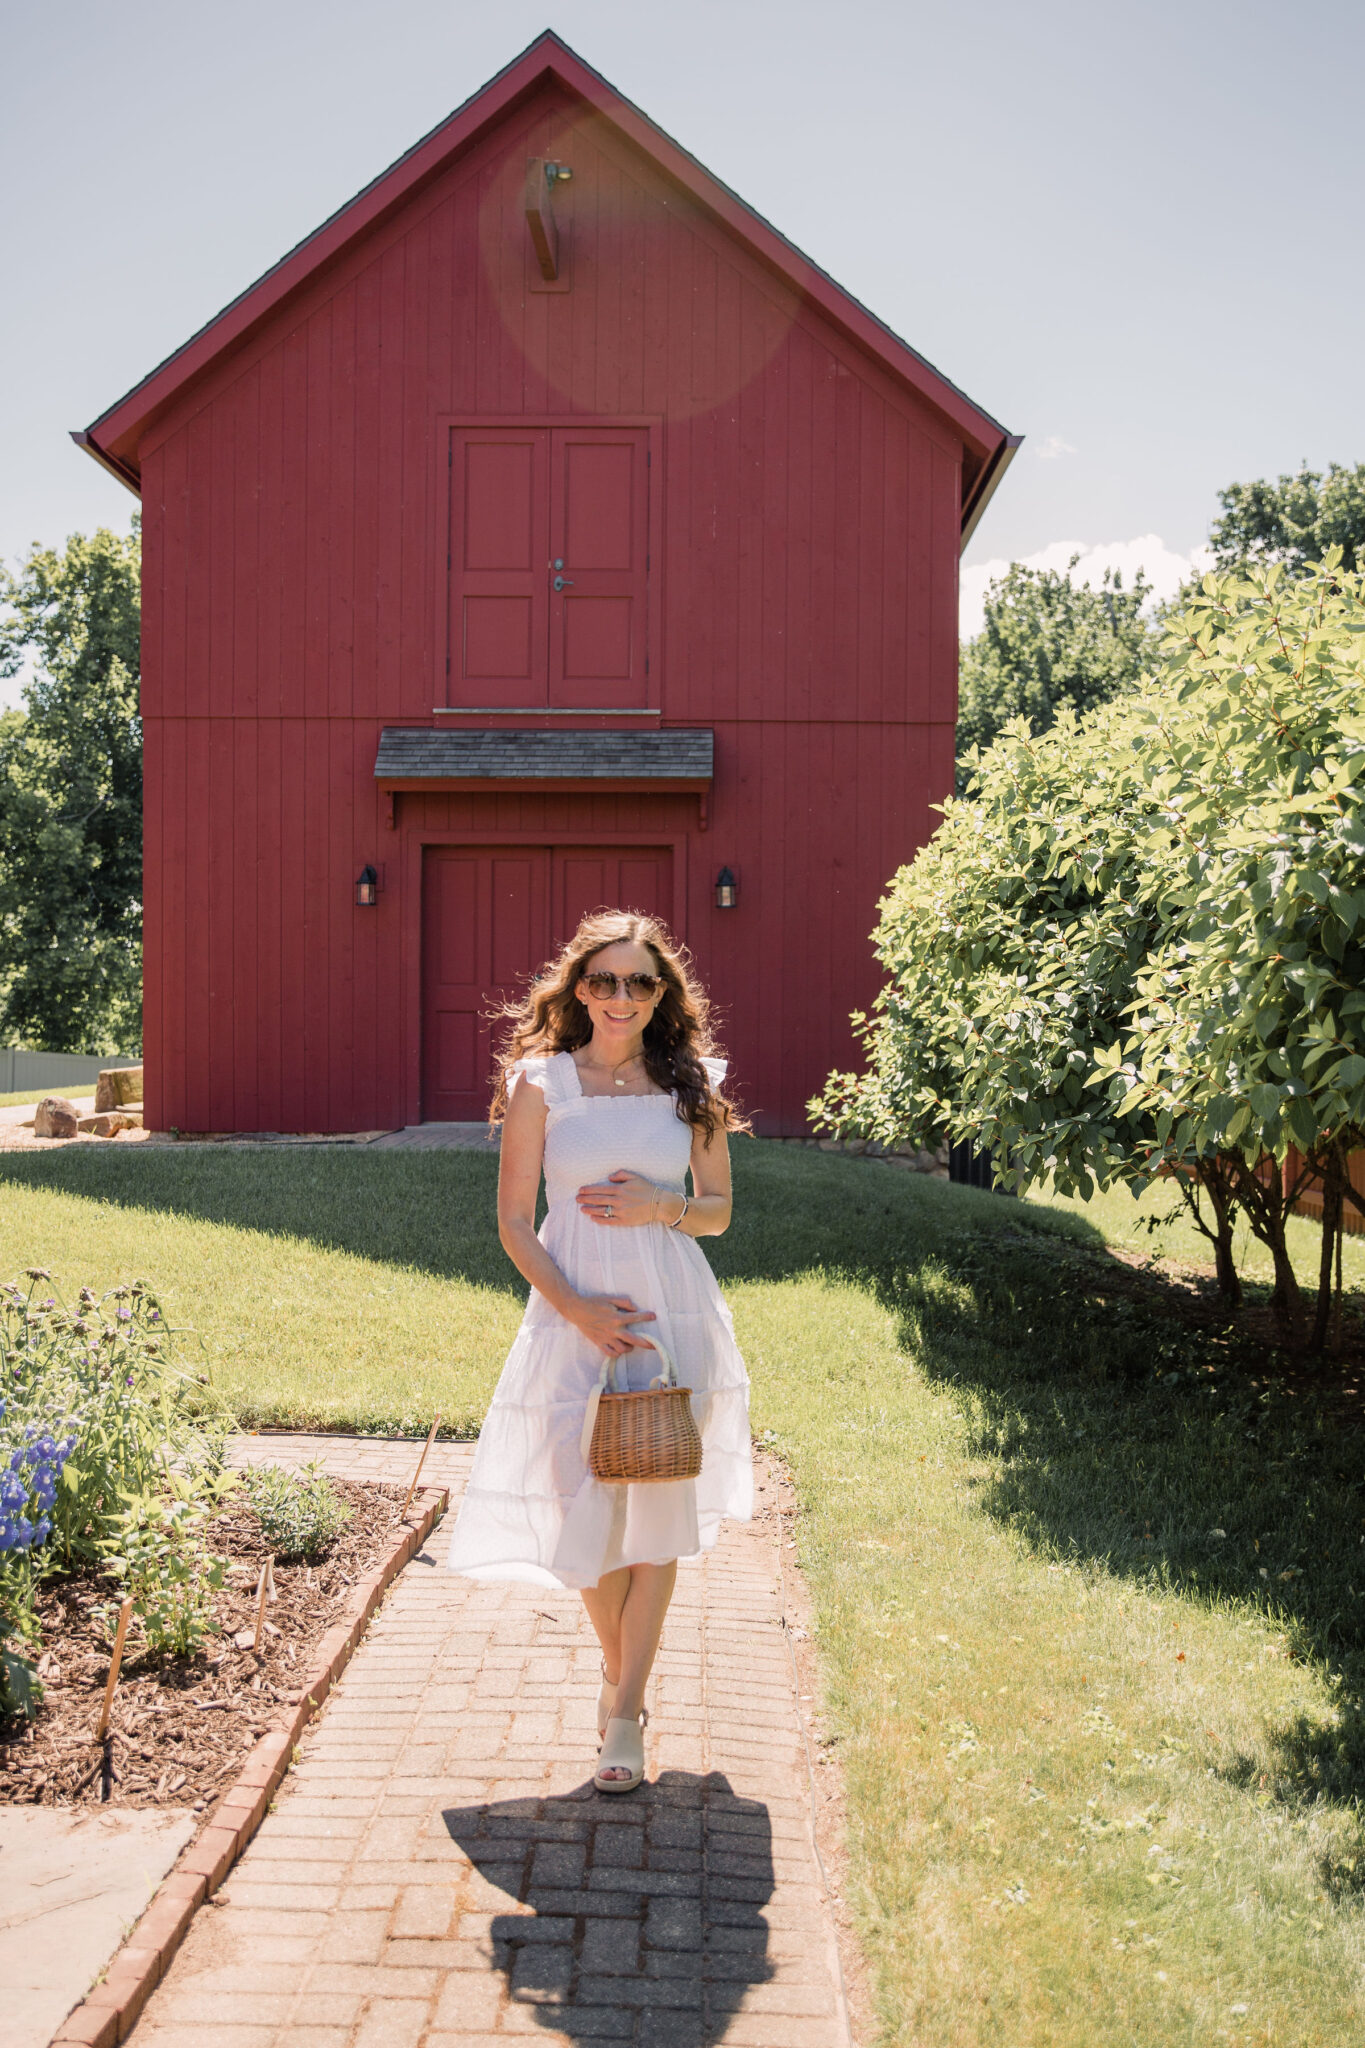 16 Weeks Pregnant in White Hill House Dress by Red Barn